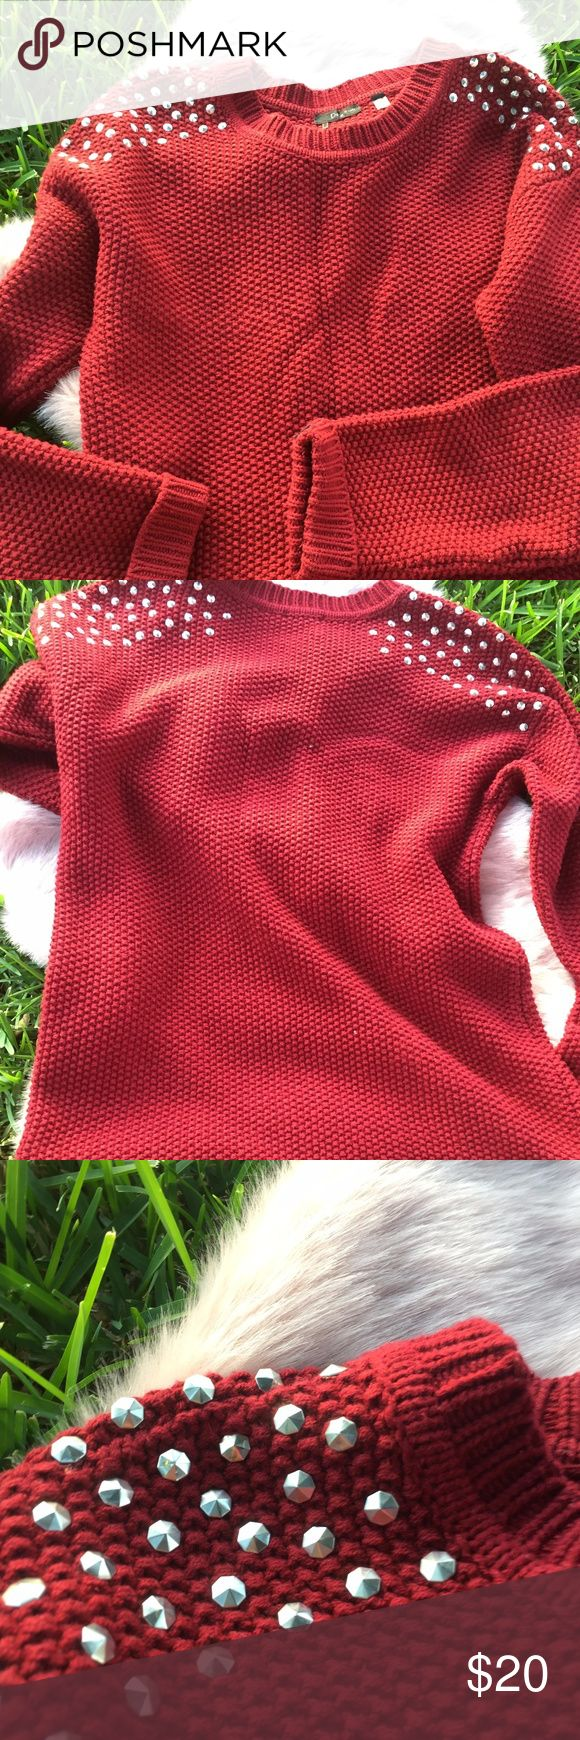 Burgundy Studded Sweater Boutique shop burgundy studded sweater It's a baggy fit sweater Boohoo Sweaters Crew & Scoop Necks